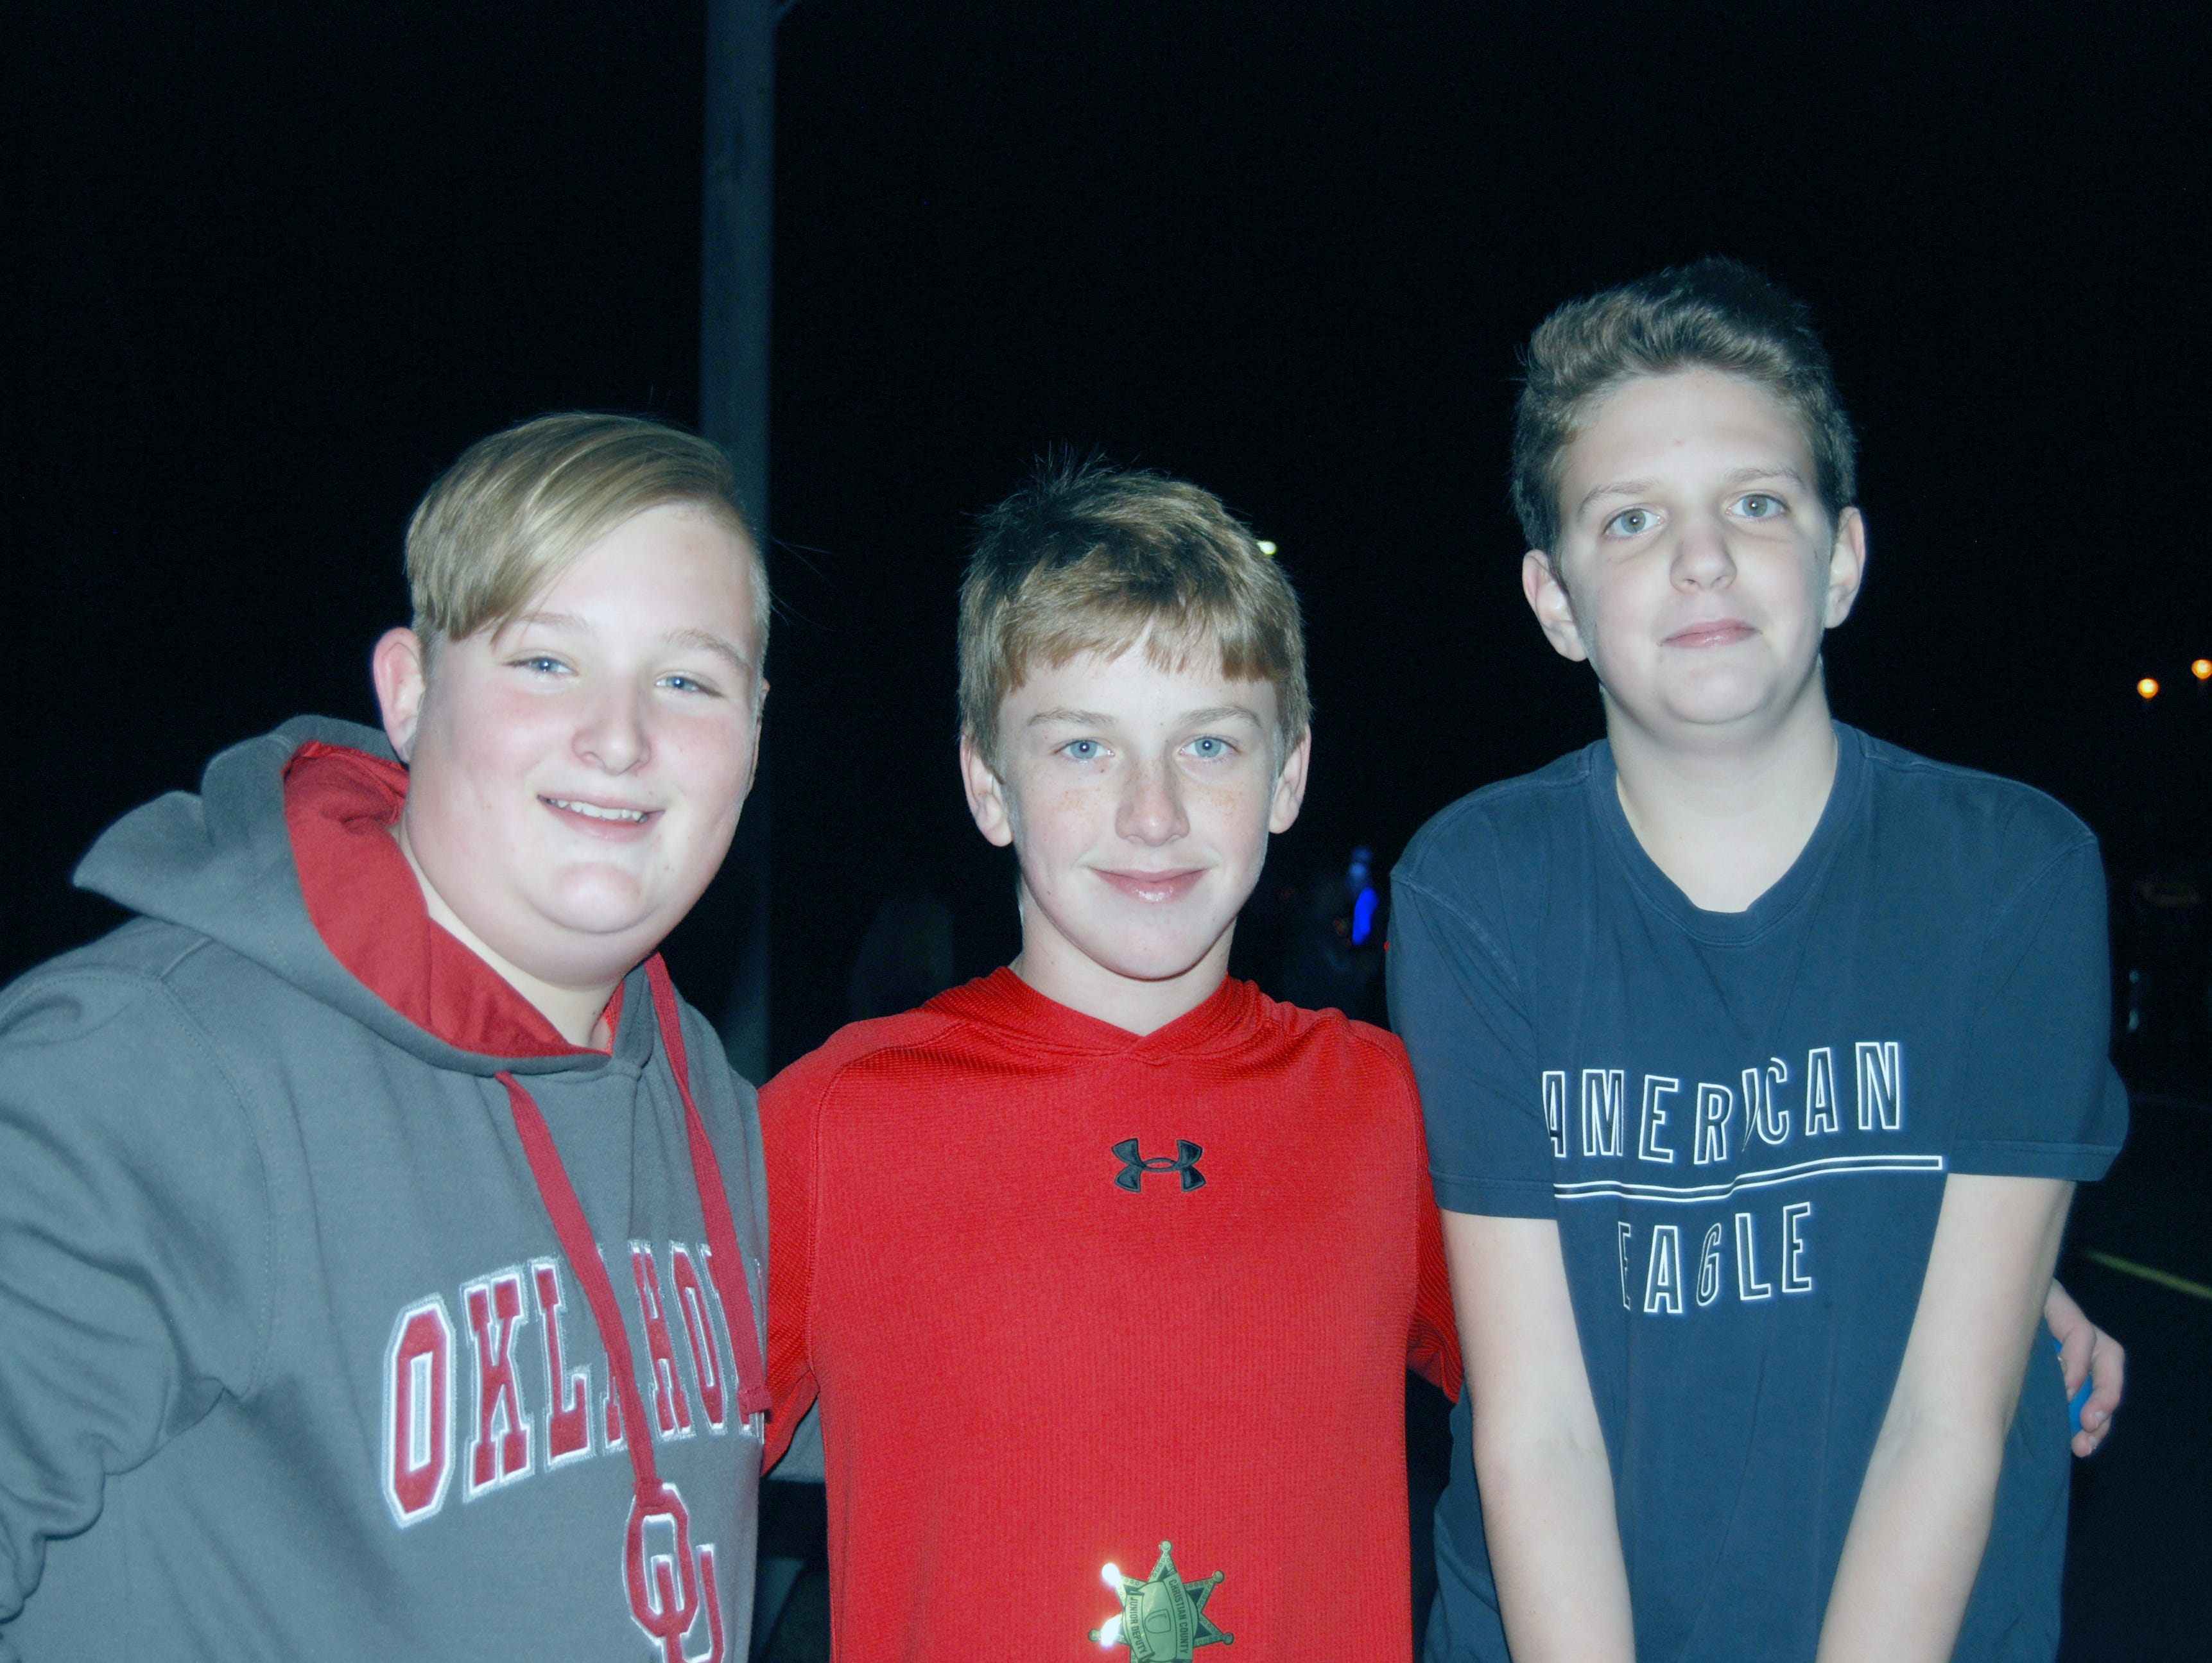 Brady Burchard, Tanner Rakers and Jackson McCurdy